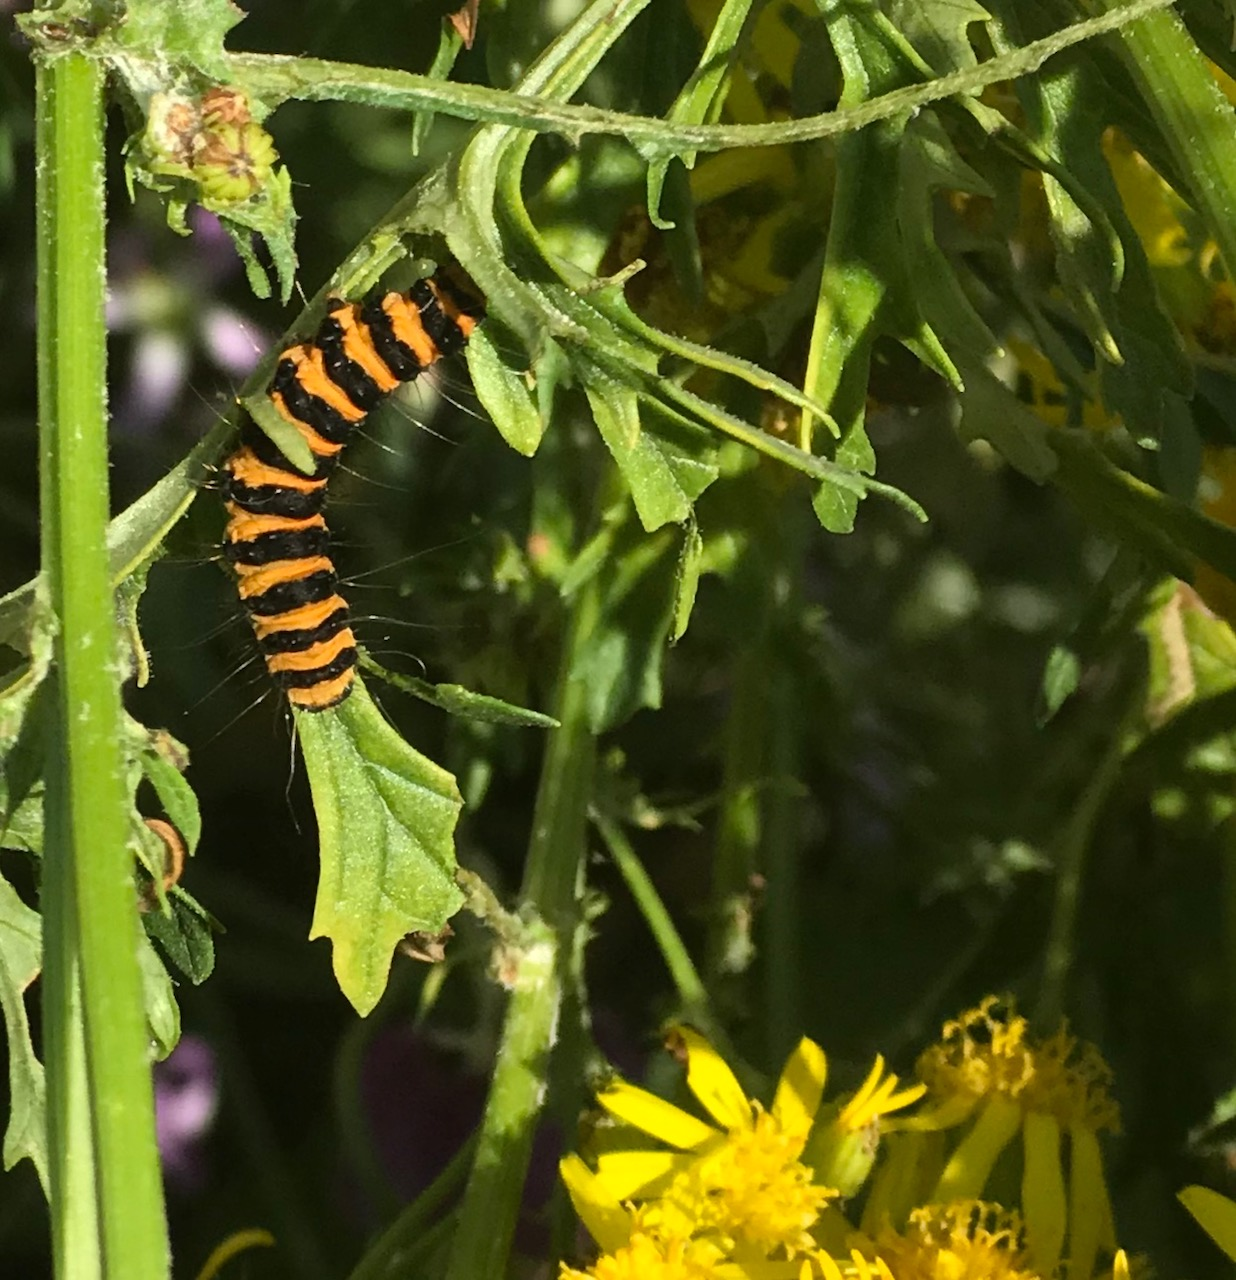 cinnabar catterpillar on ragwort